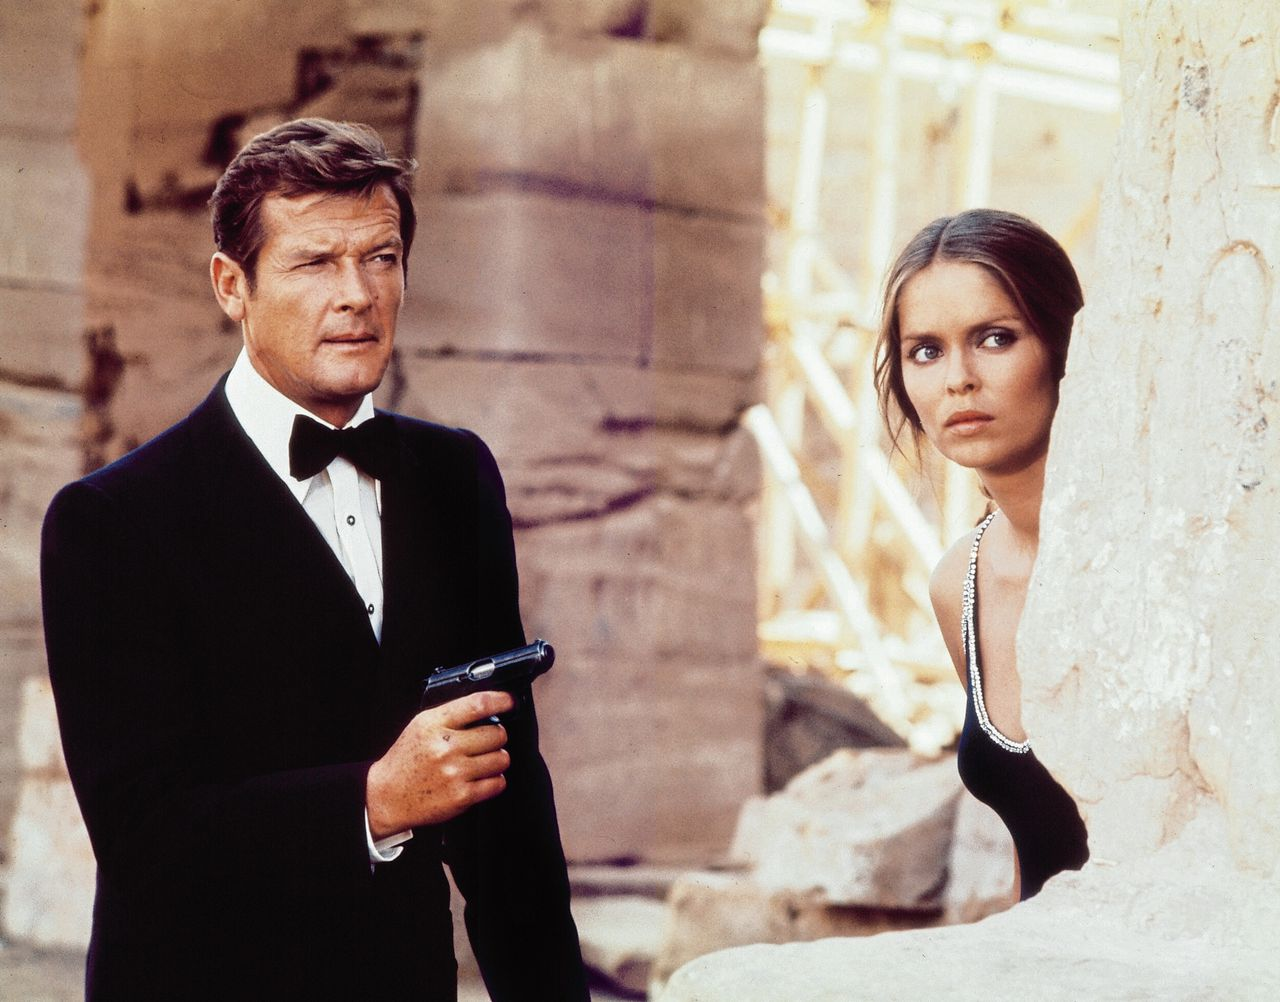 Moore als James Bond met Barbara Bach in The Spy Who Loved Me, (1977). United Artists / Photofest